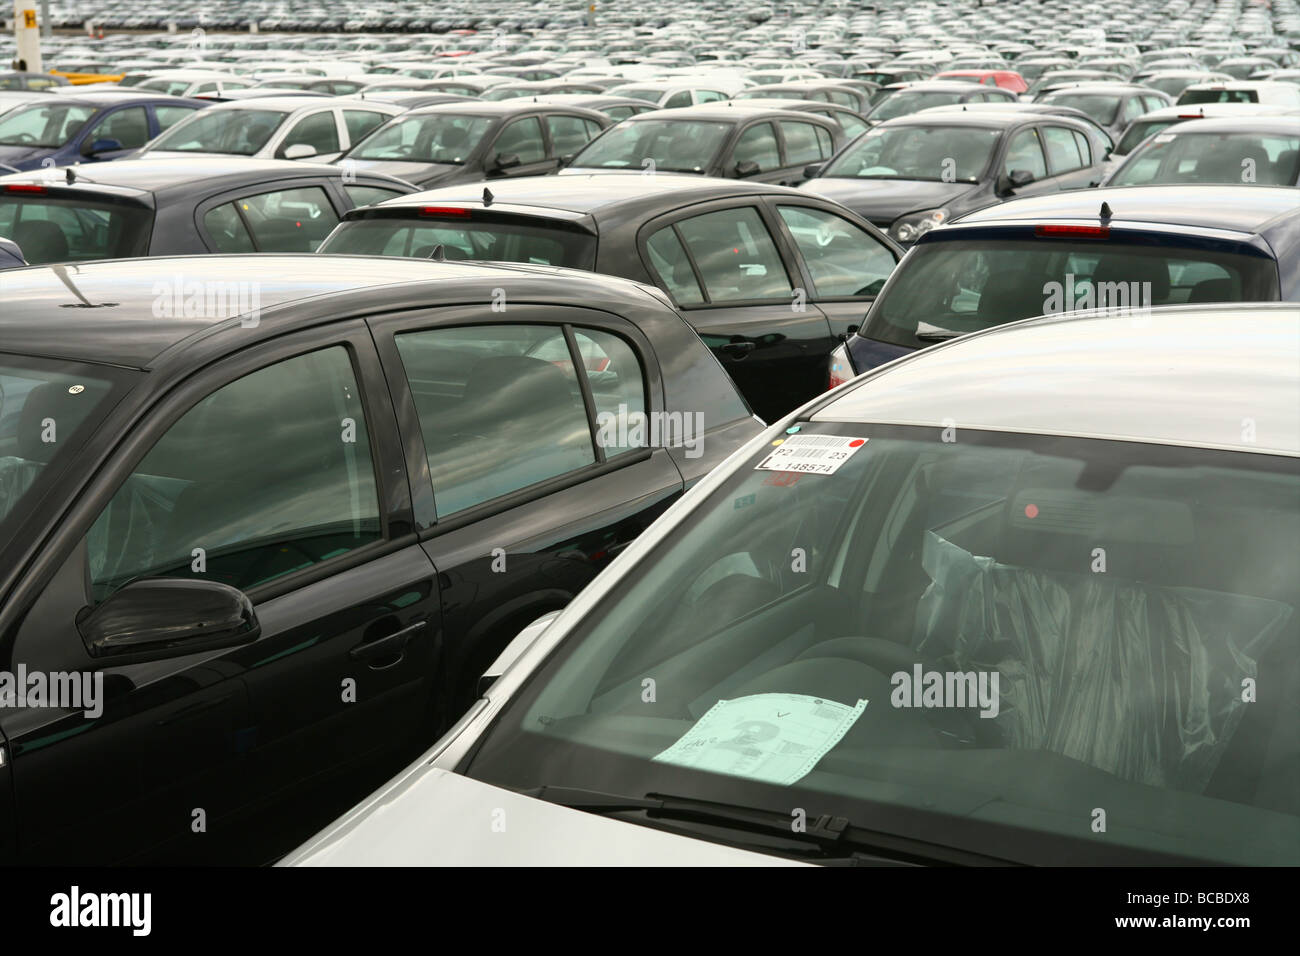 Vauxhall Car Factory Ellesmere Port, showing unsold Vauxhall Astras - Stock Image